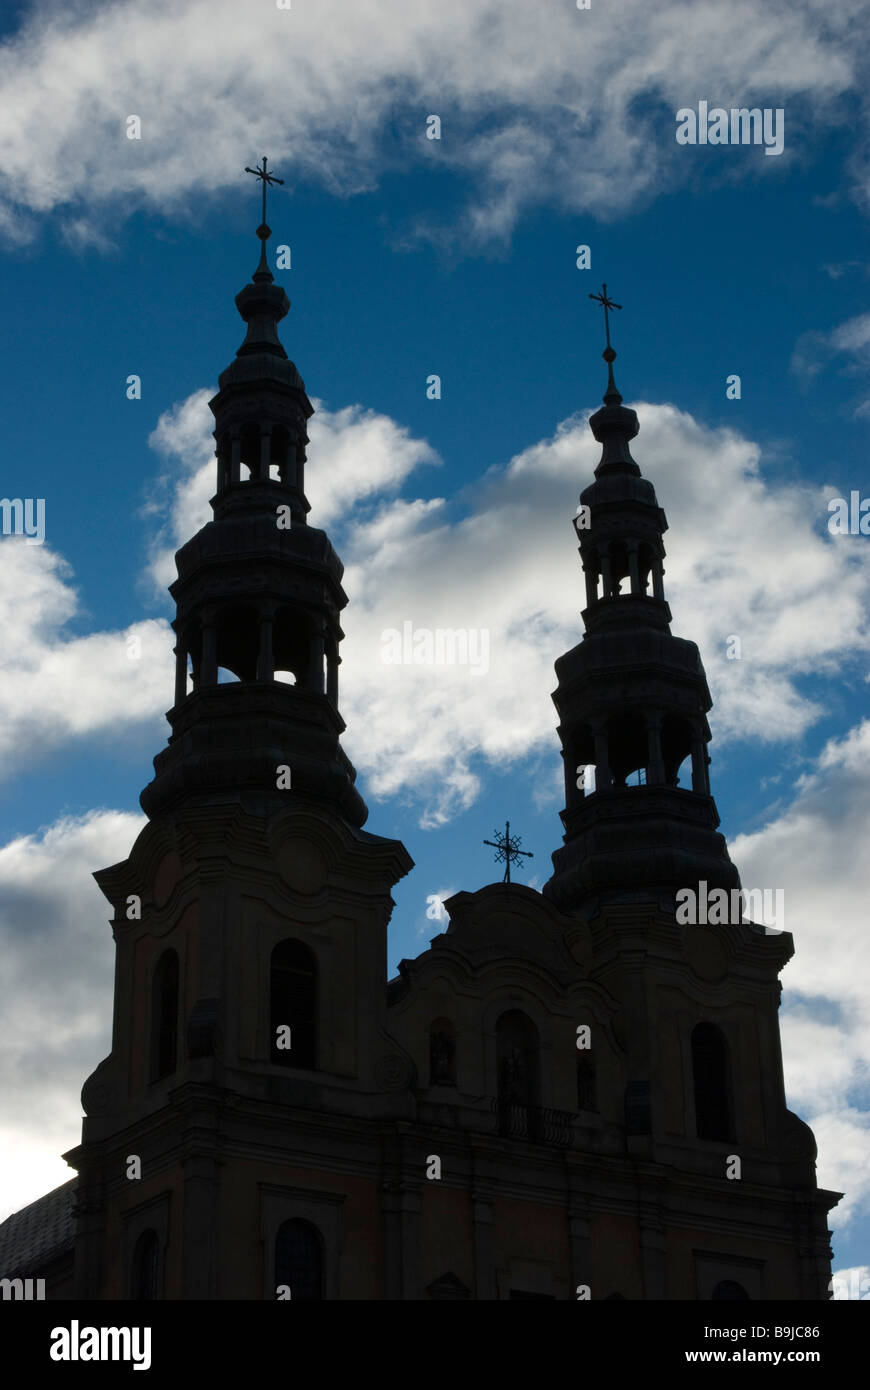 The twin spires of the Parish Church of St. Stanislaus silhouetted against deep blue sky, Poznan, Poland - Stock Image